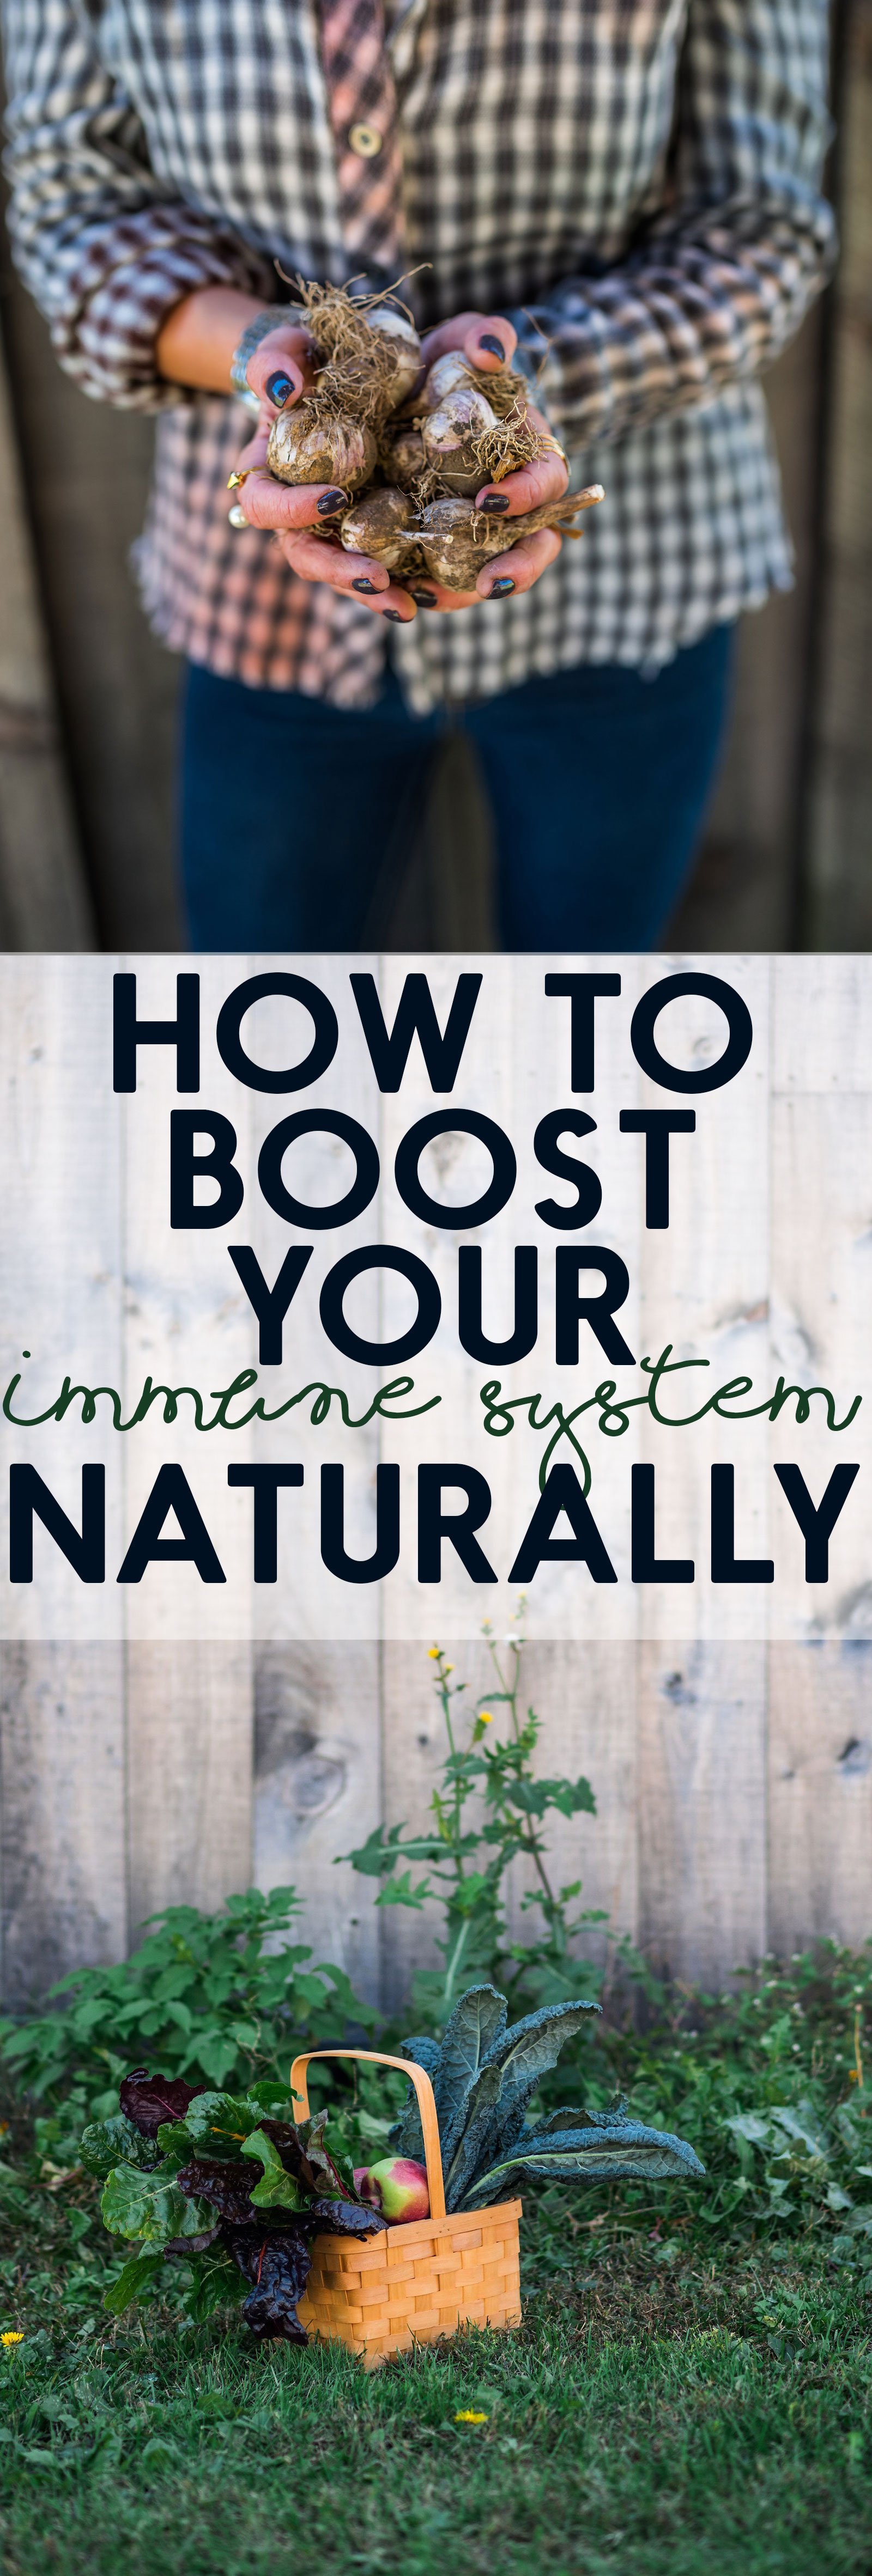 Natural Ways to Boost Immune System